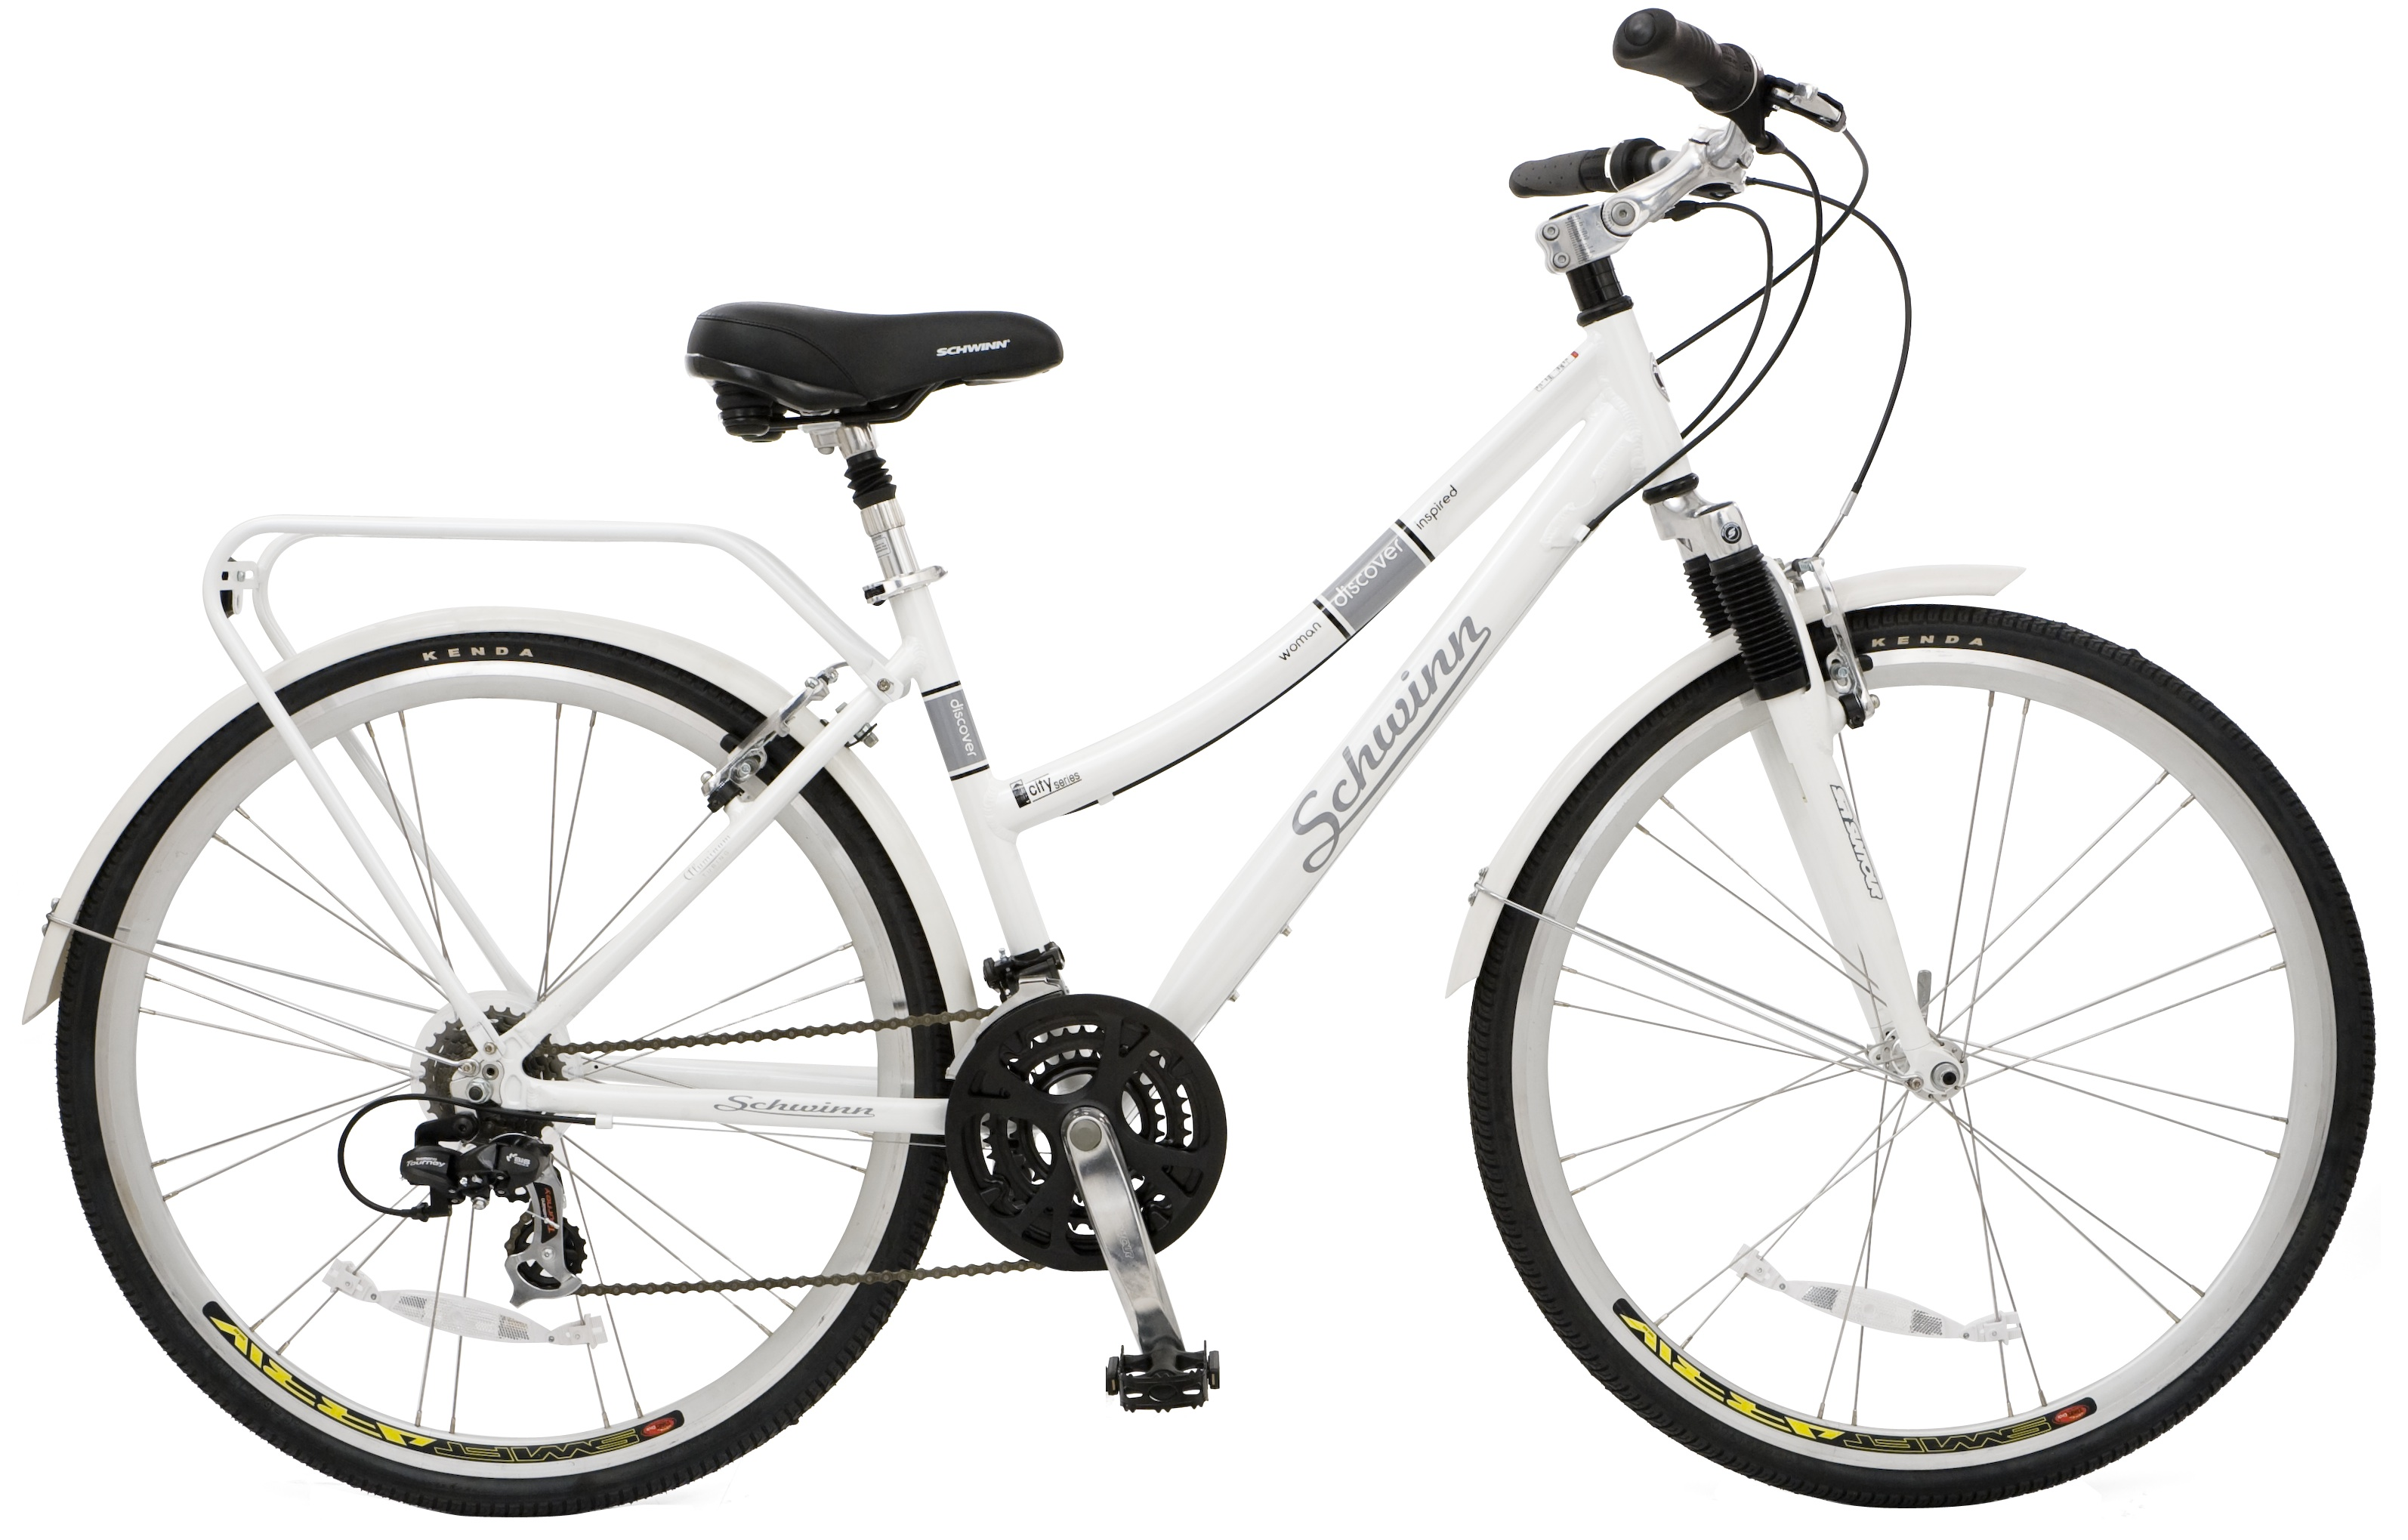 Review of Schwinn Discover Women's Hybrid Bike (700C Wheels)